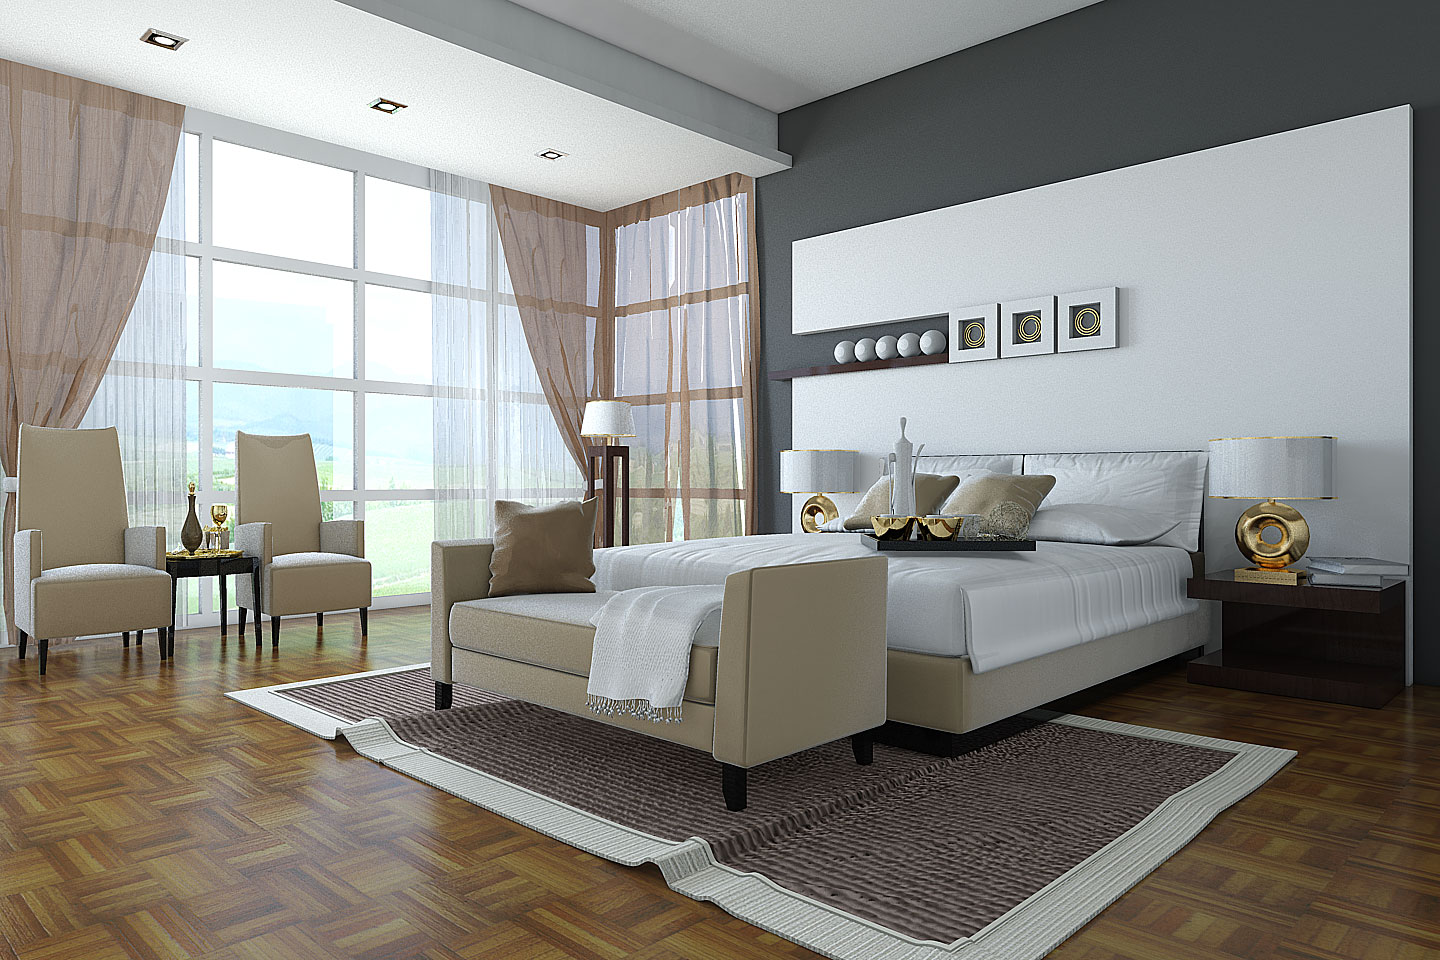 Bedrooms Designs. classic bedroom design Beautiful Bedrooms